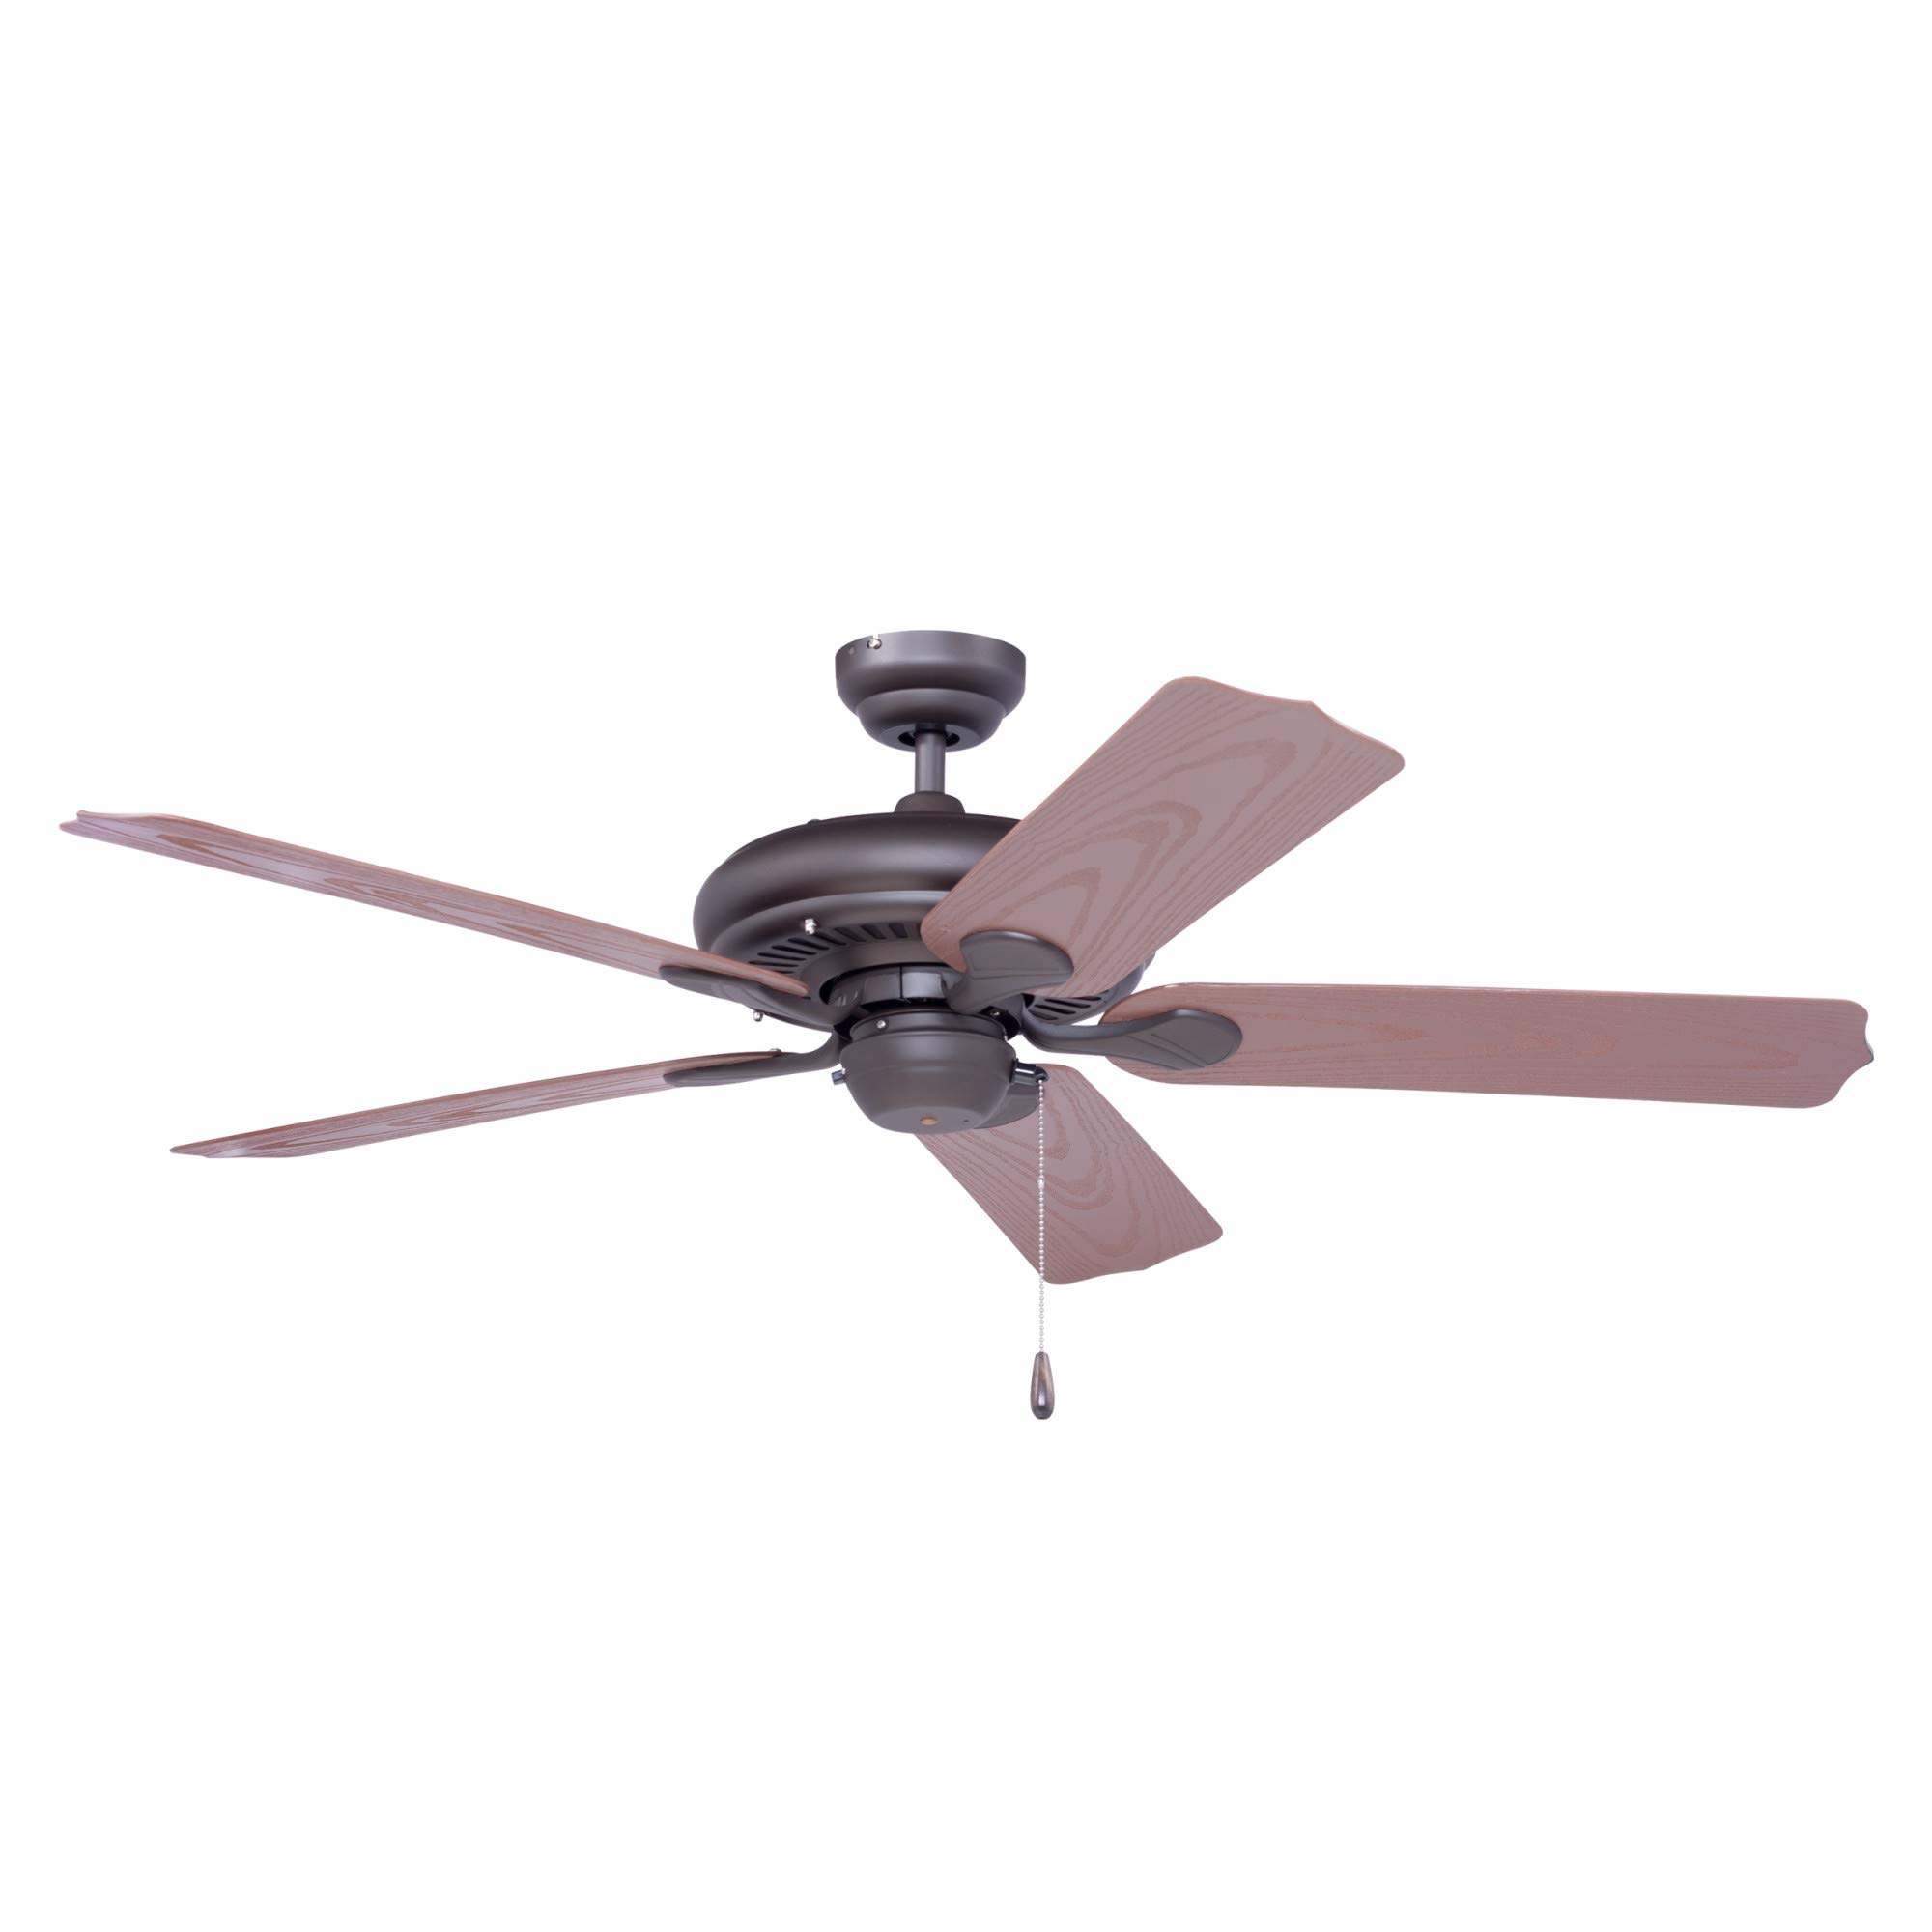 Miseno MFAN-W7101OB 52'' Indoor/Outdoor Ceiling Fan - Includes 5 ABS Blades